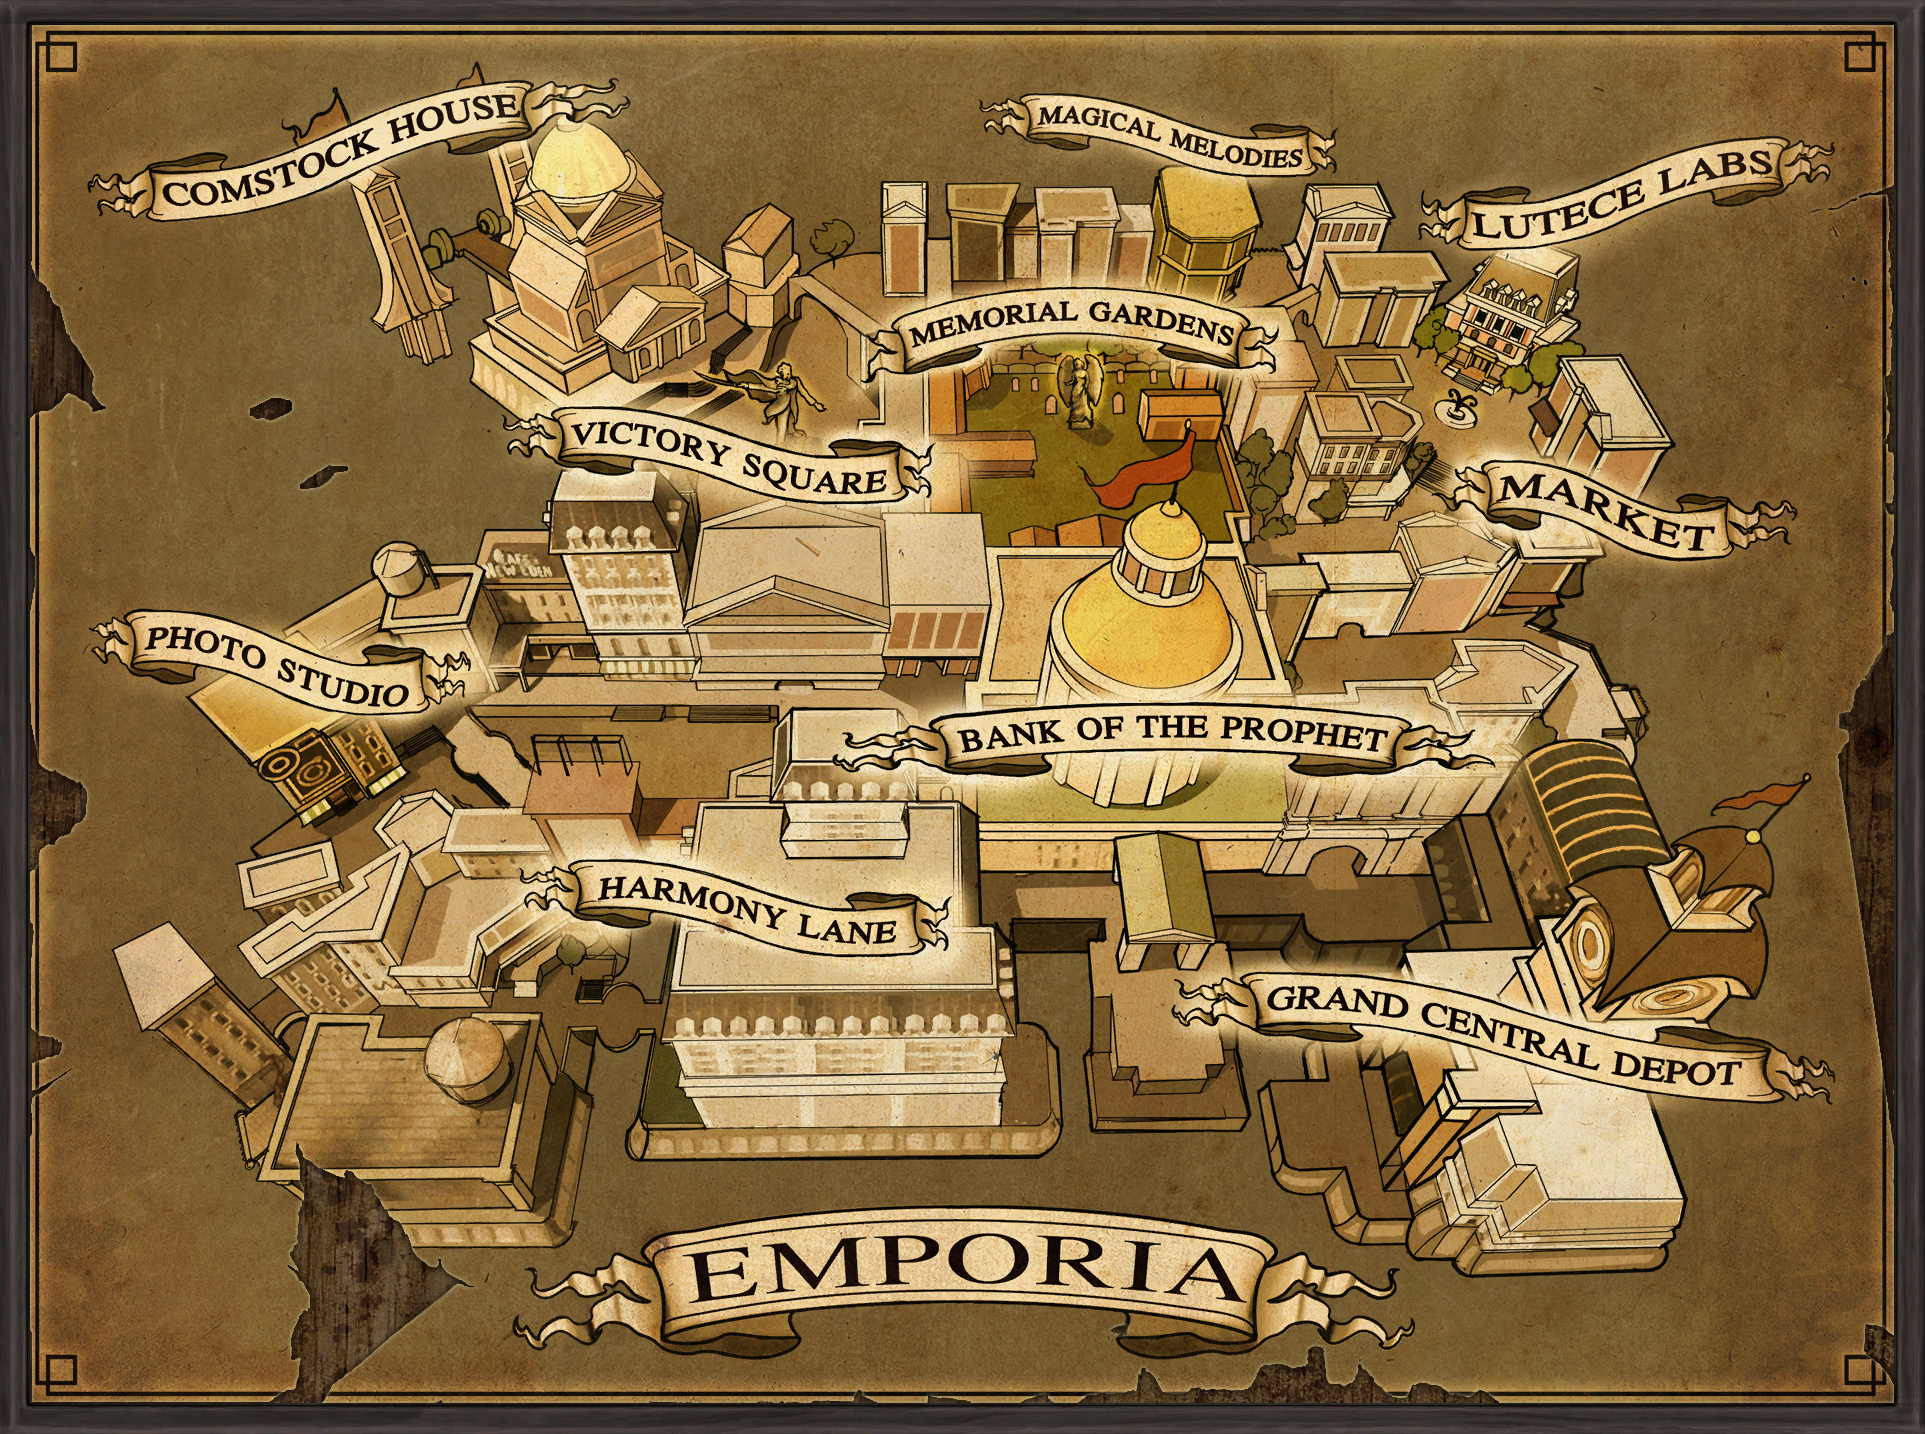 Image - Emporia Map.png | BioShock Wiki | FANDOM powered ... | 1925 x 1434 png 3218kB